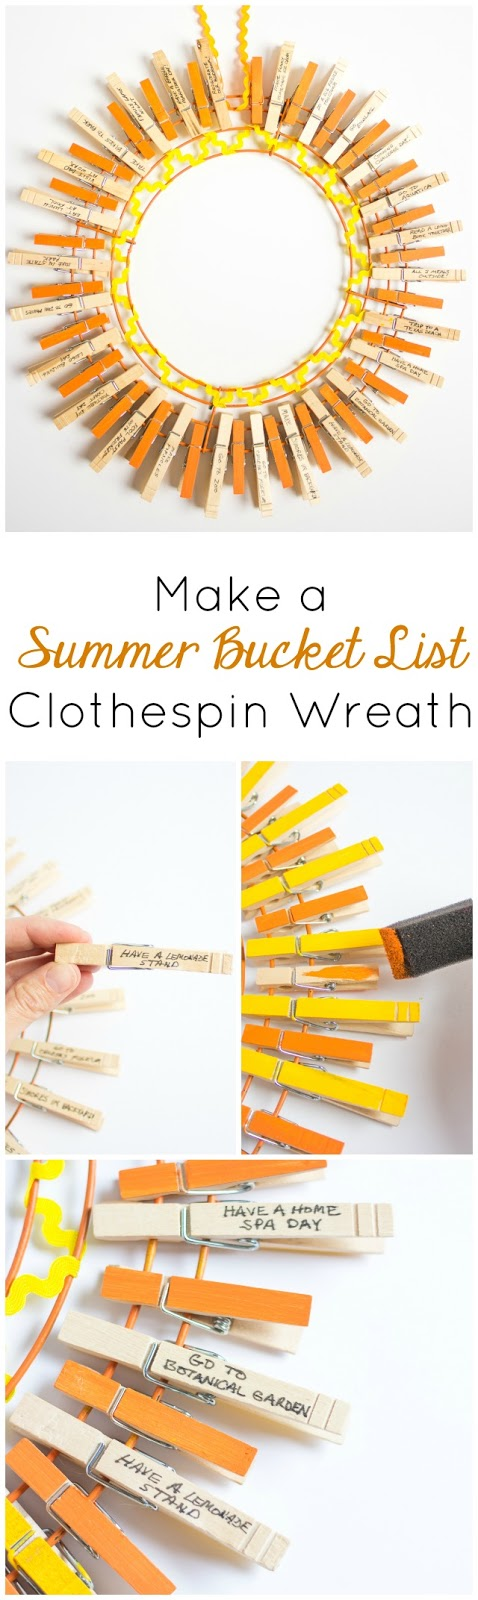 Make a summer bucket list wreath out of clothespins! It turns into a sunshine when you have crossed everything off your list!